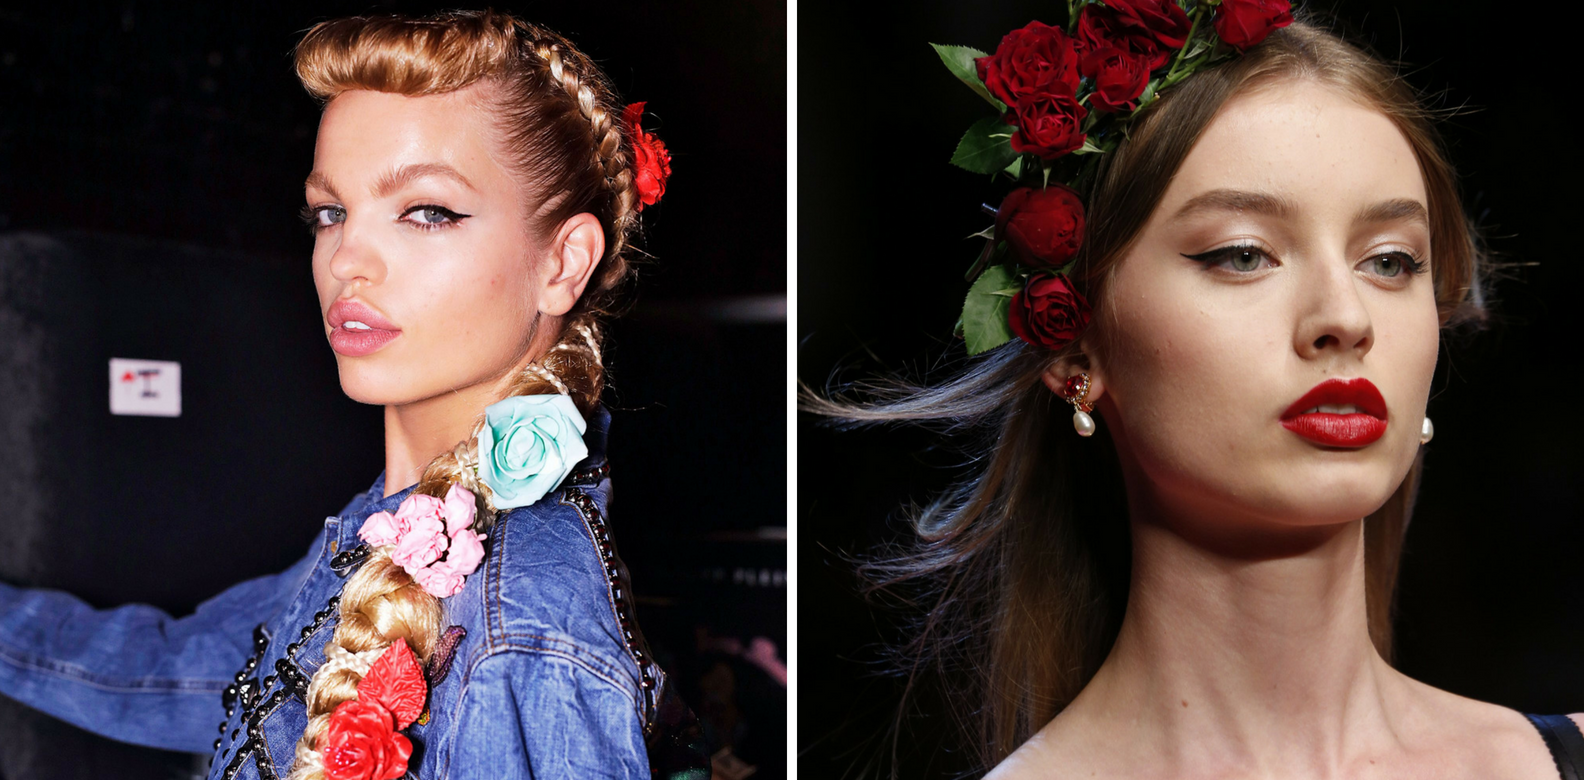 Spring Fling: How To Wear Floral Hair Accessories This Season